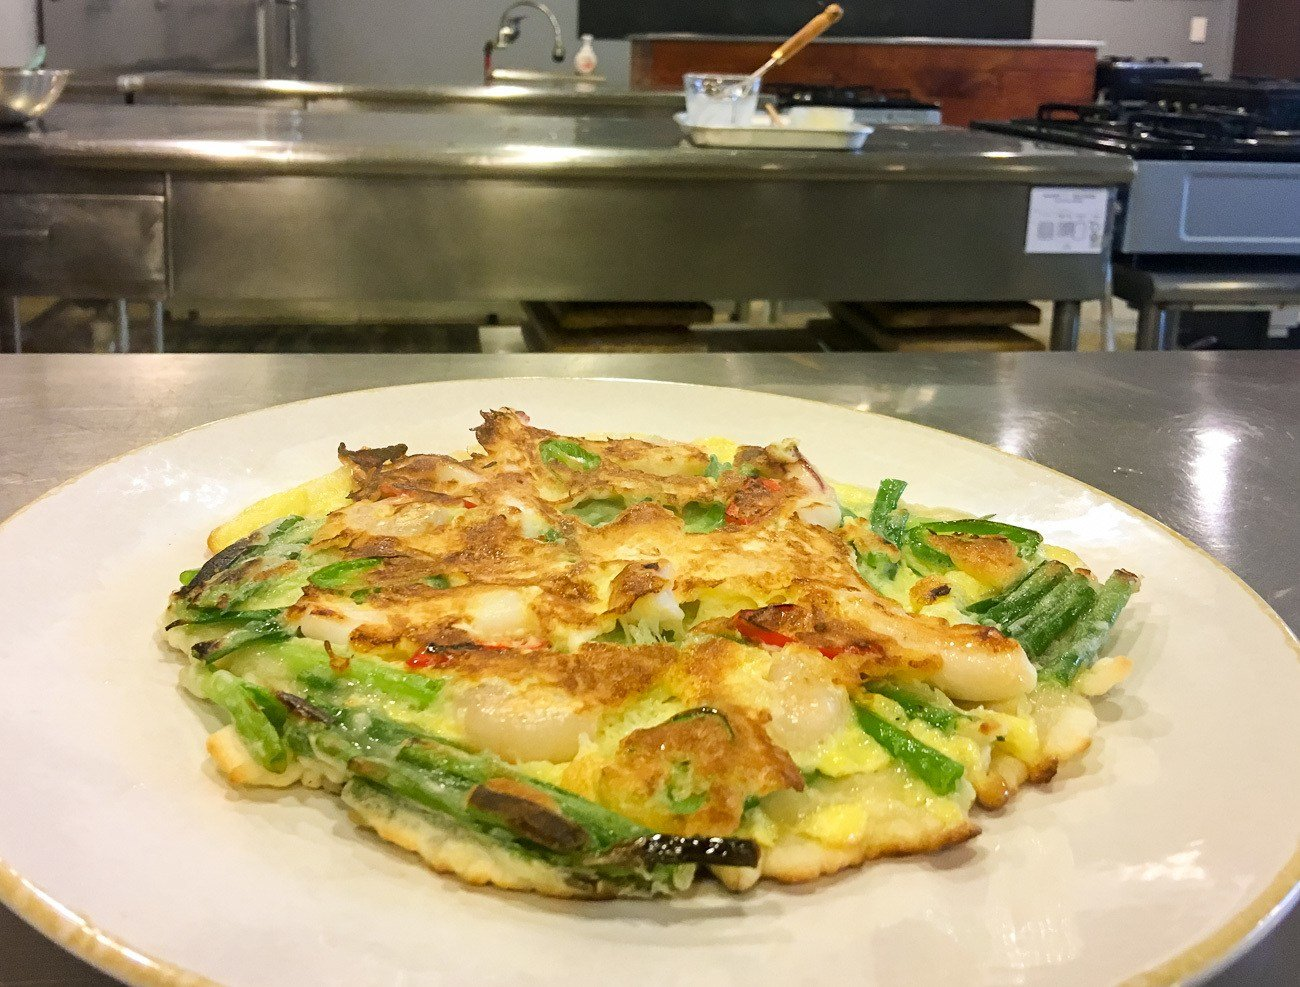 Pajeon is a delicious egg batter and scallion pancake that is a popular Korean food.